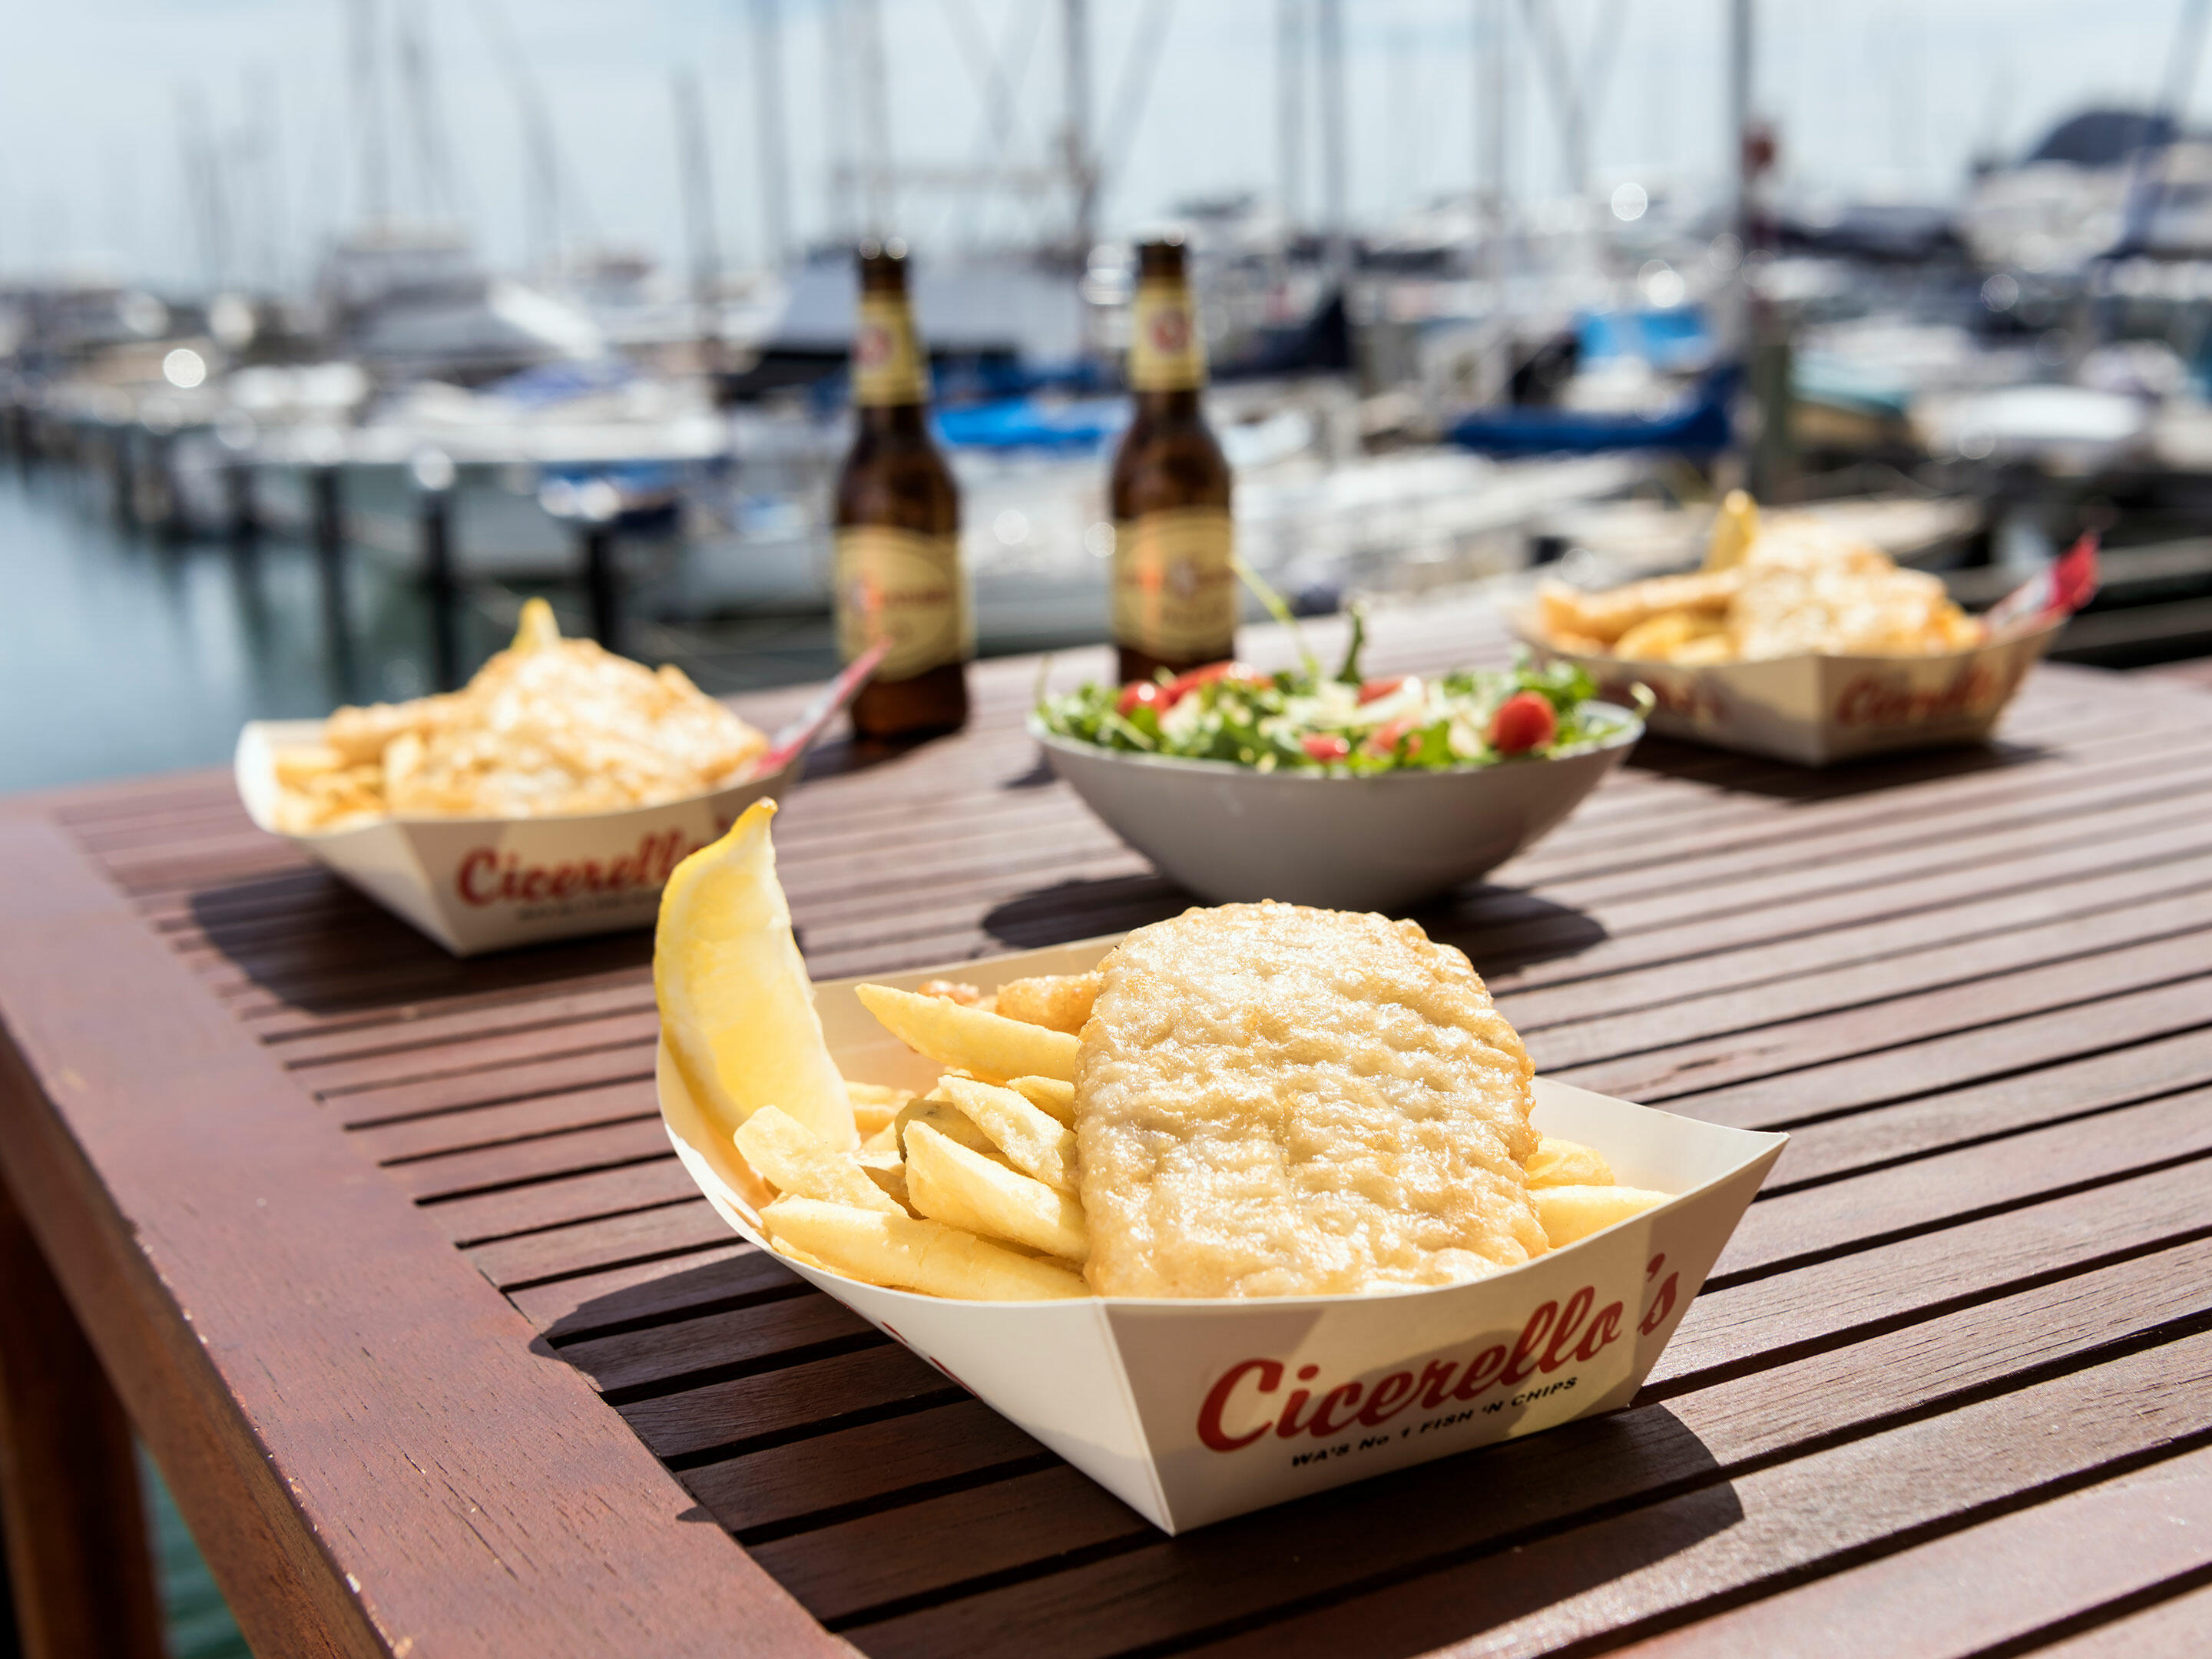 Fish and chips served at Cicerello's near Be Fremantle